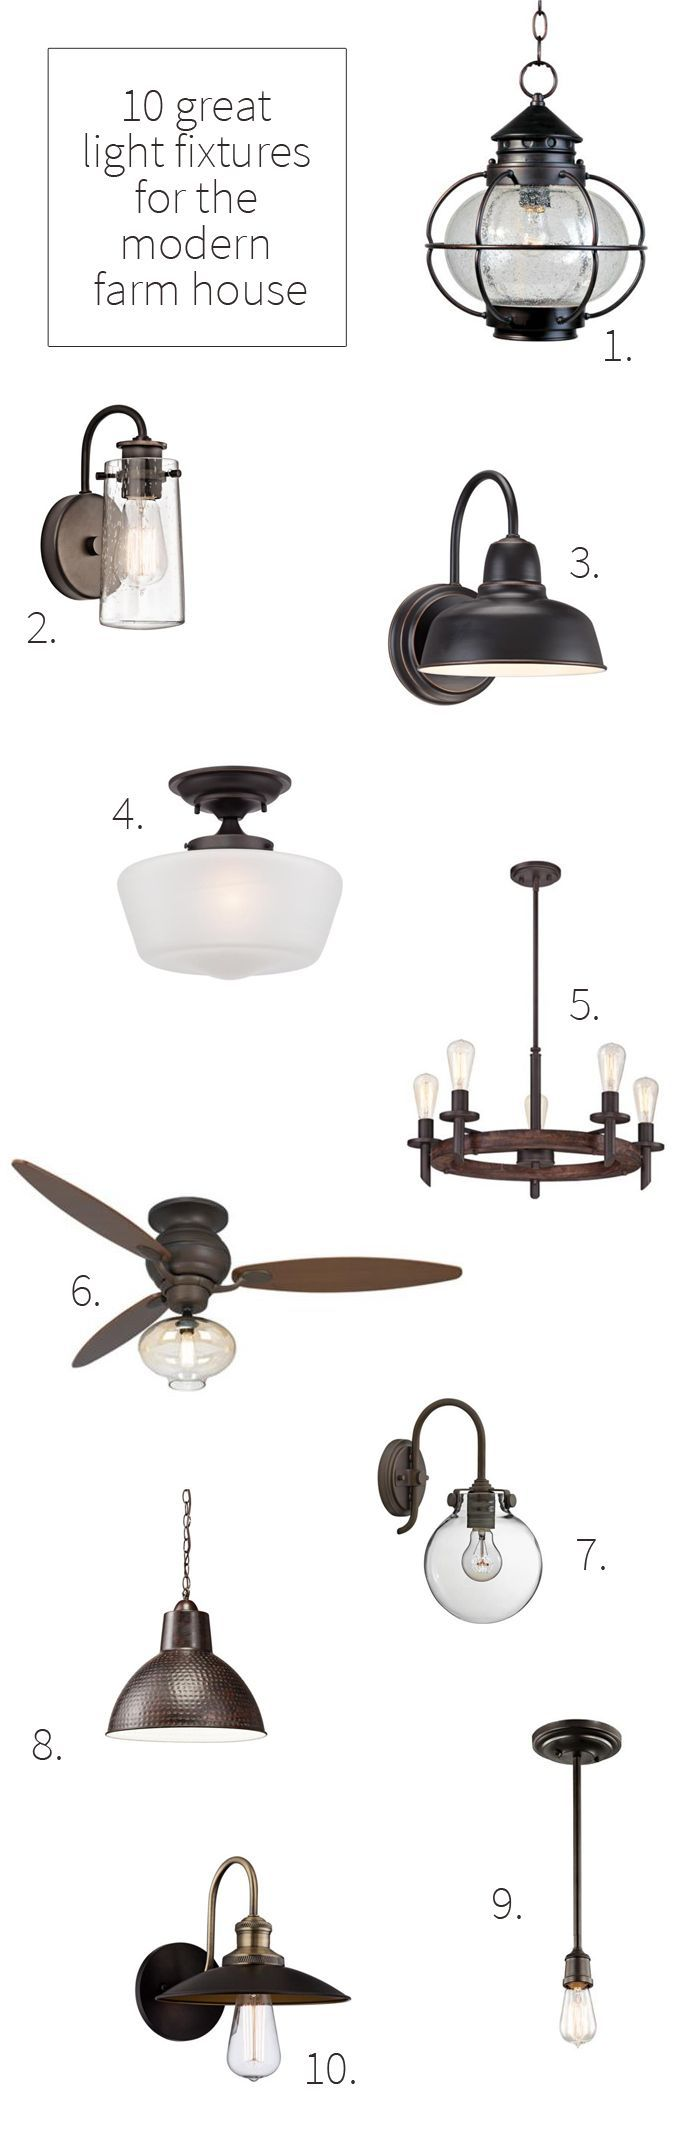 10 great light fixtures for the modern farmhouse